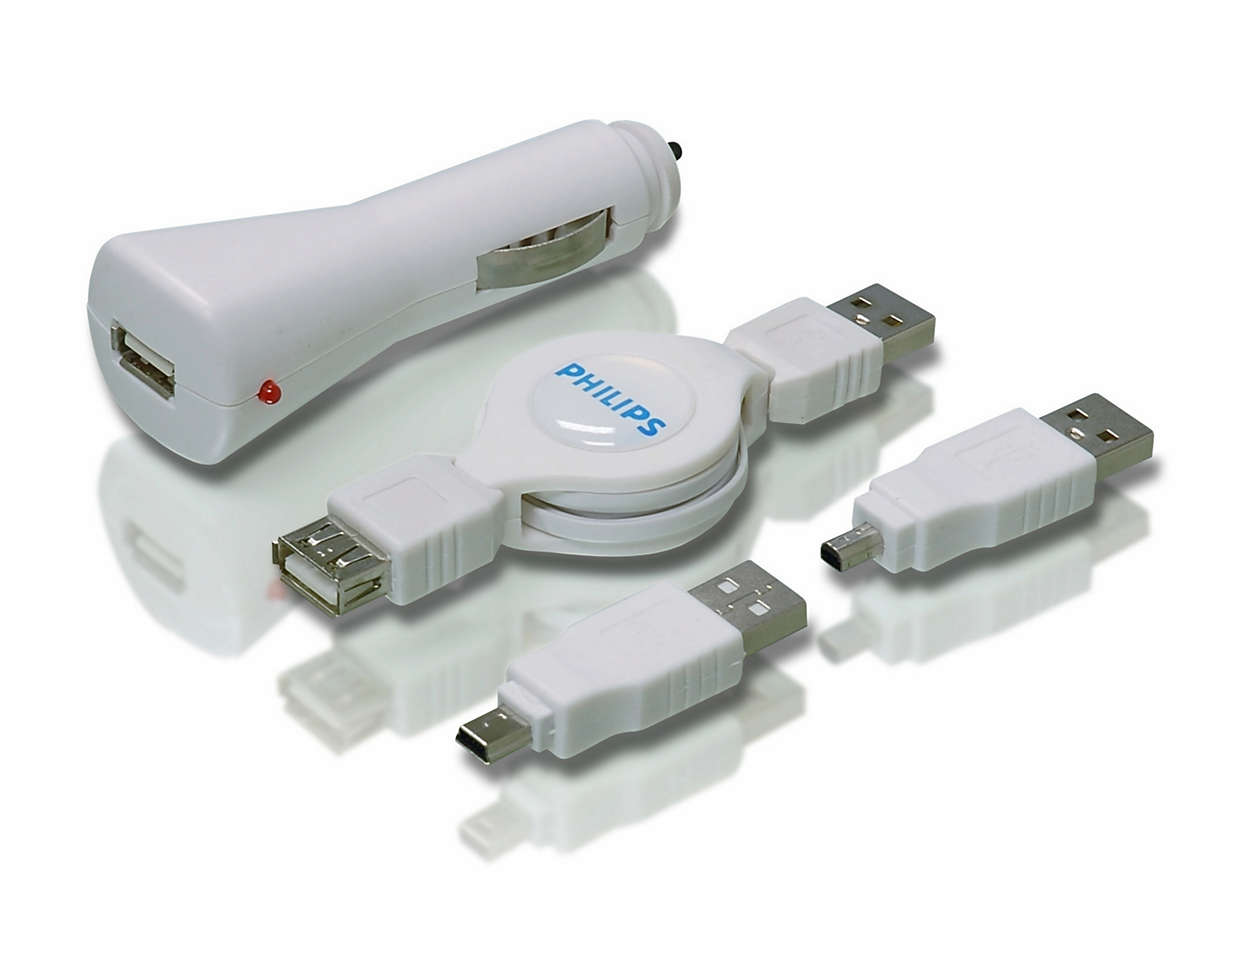 Carga tus dispositivos USB